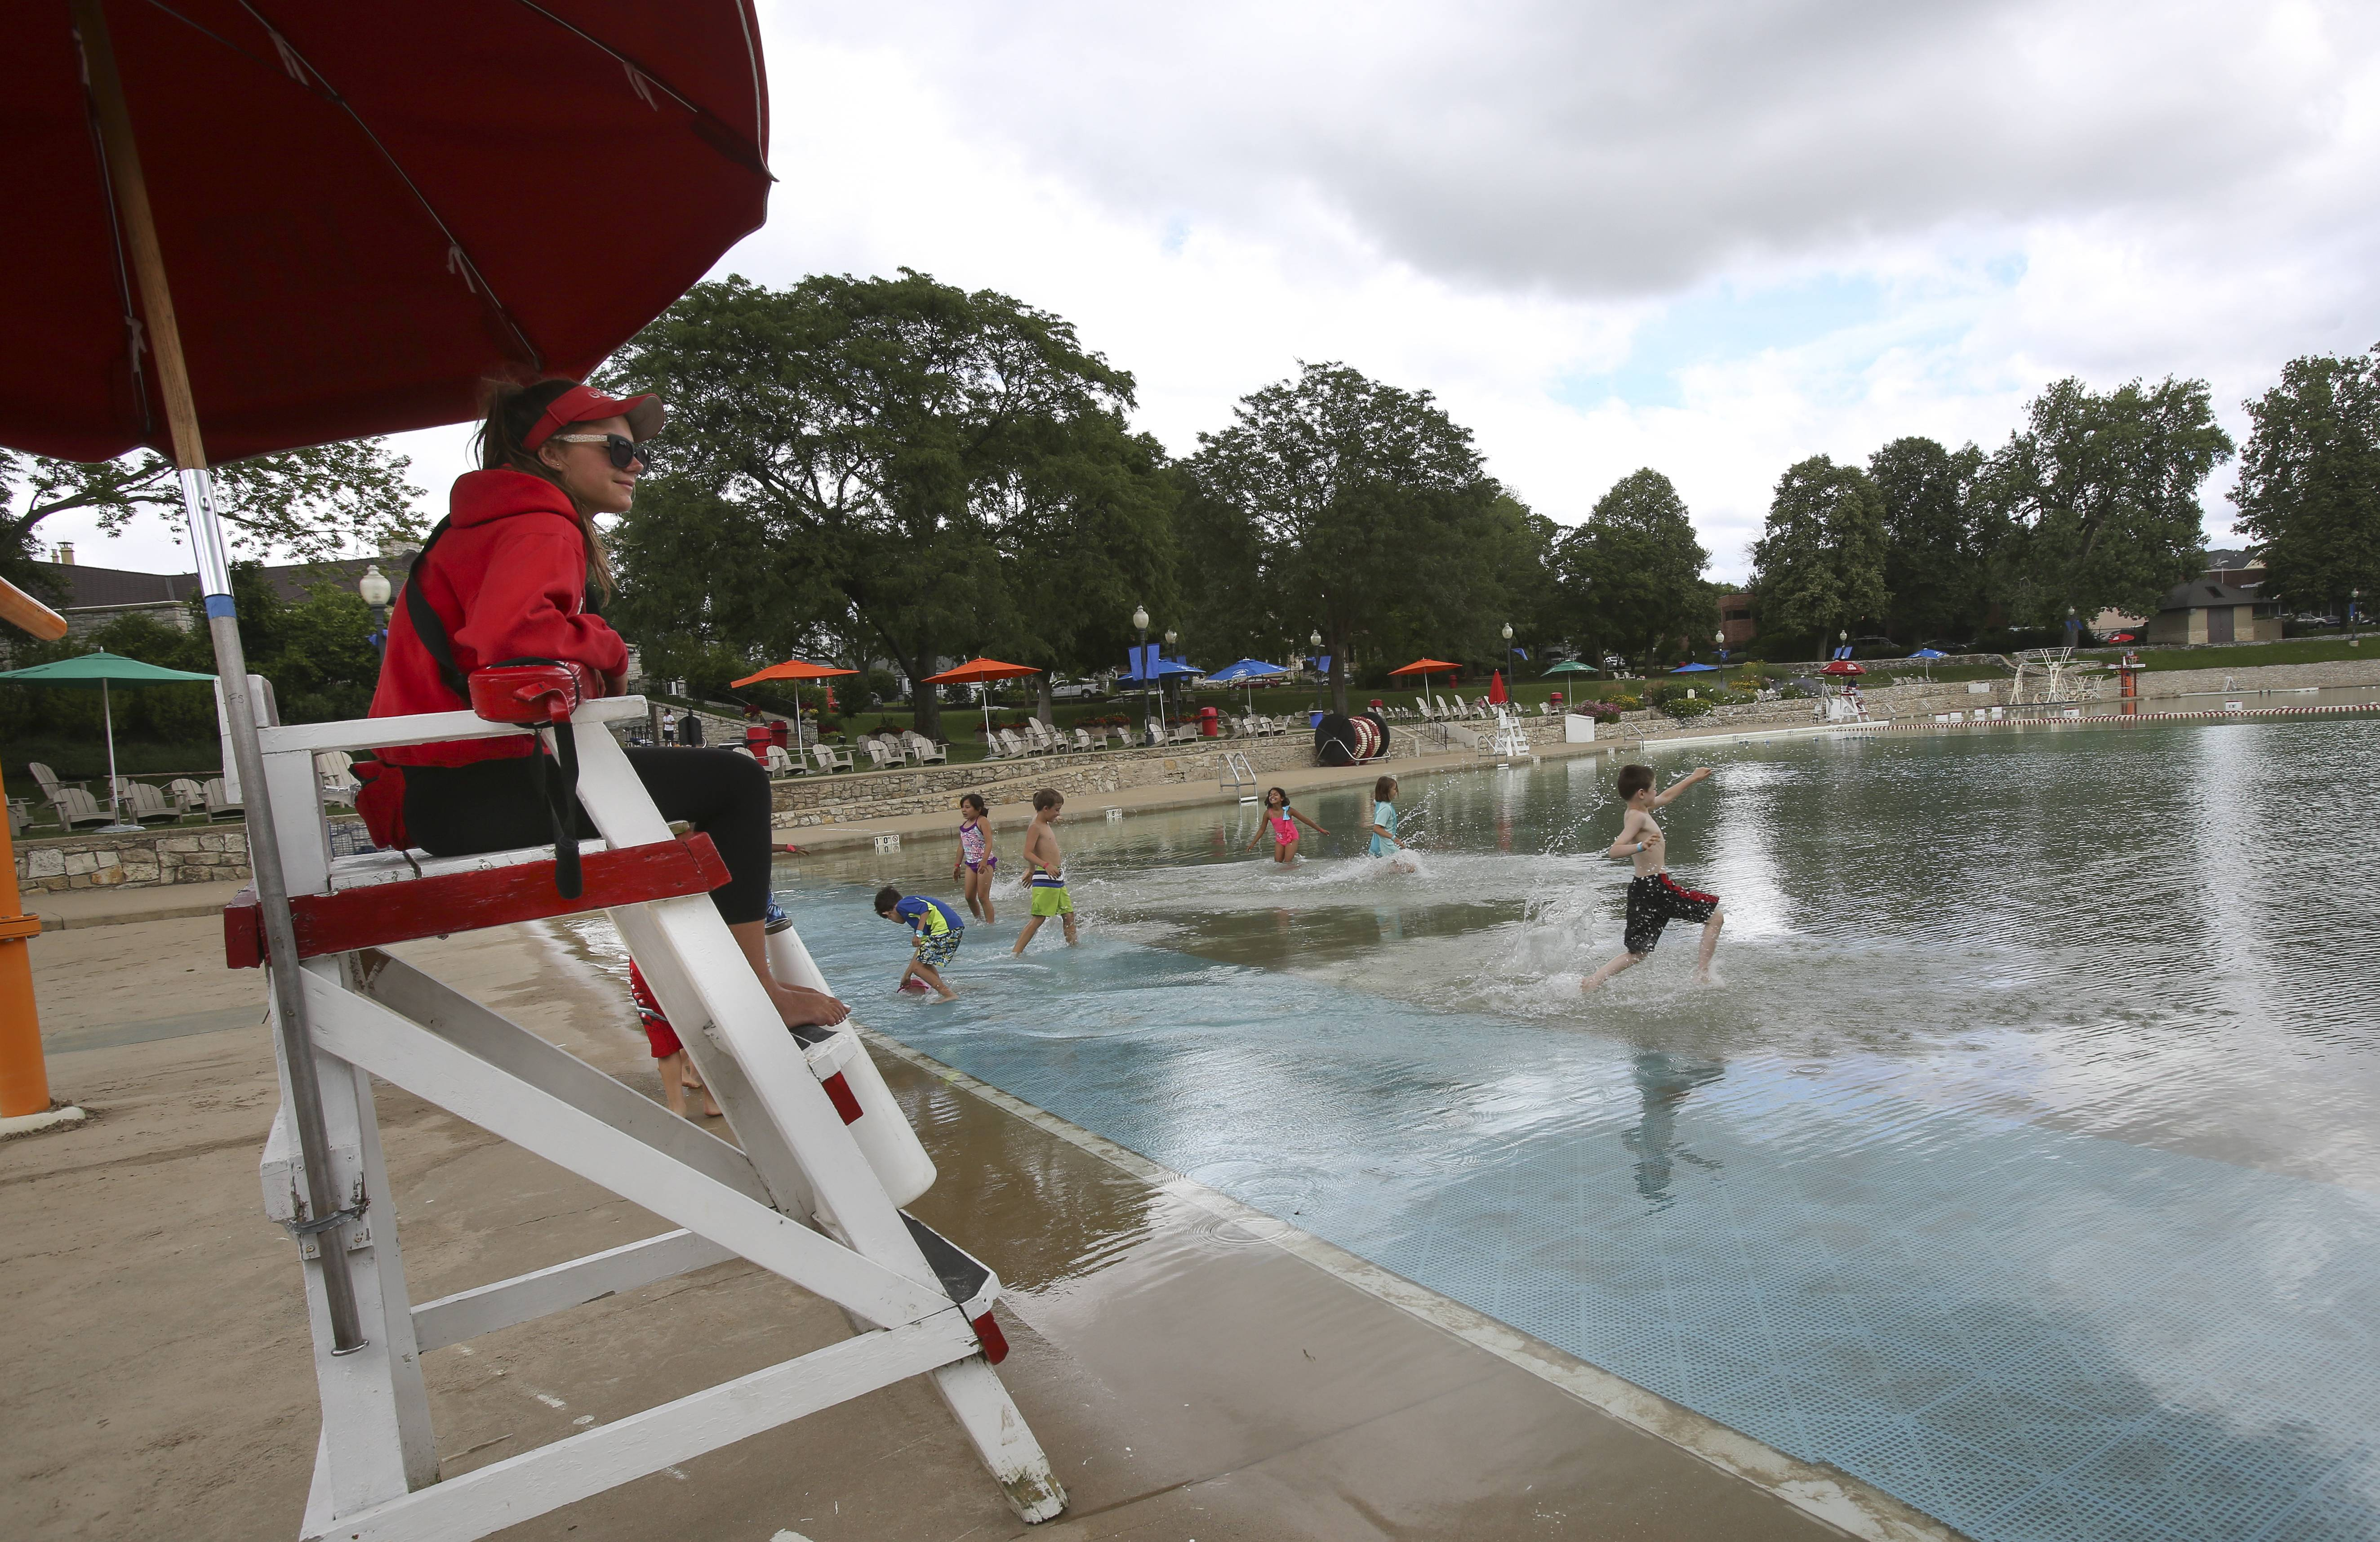 Lifeguard Sarah Pilgrim keeps an eye on the few kids braving the cold waters at Centennial Beach in Naperville on Tuesday. The water did not open to swimmers until 11:40 am, when the temperature reached 65 degrees.